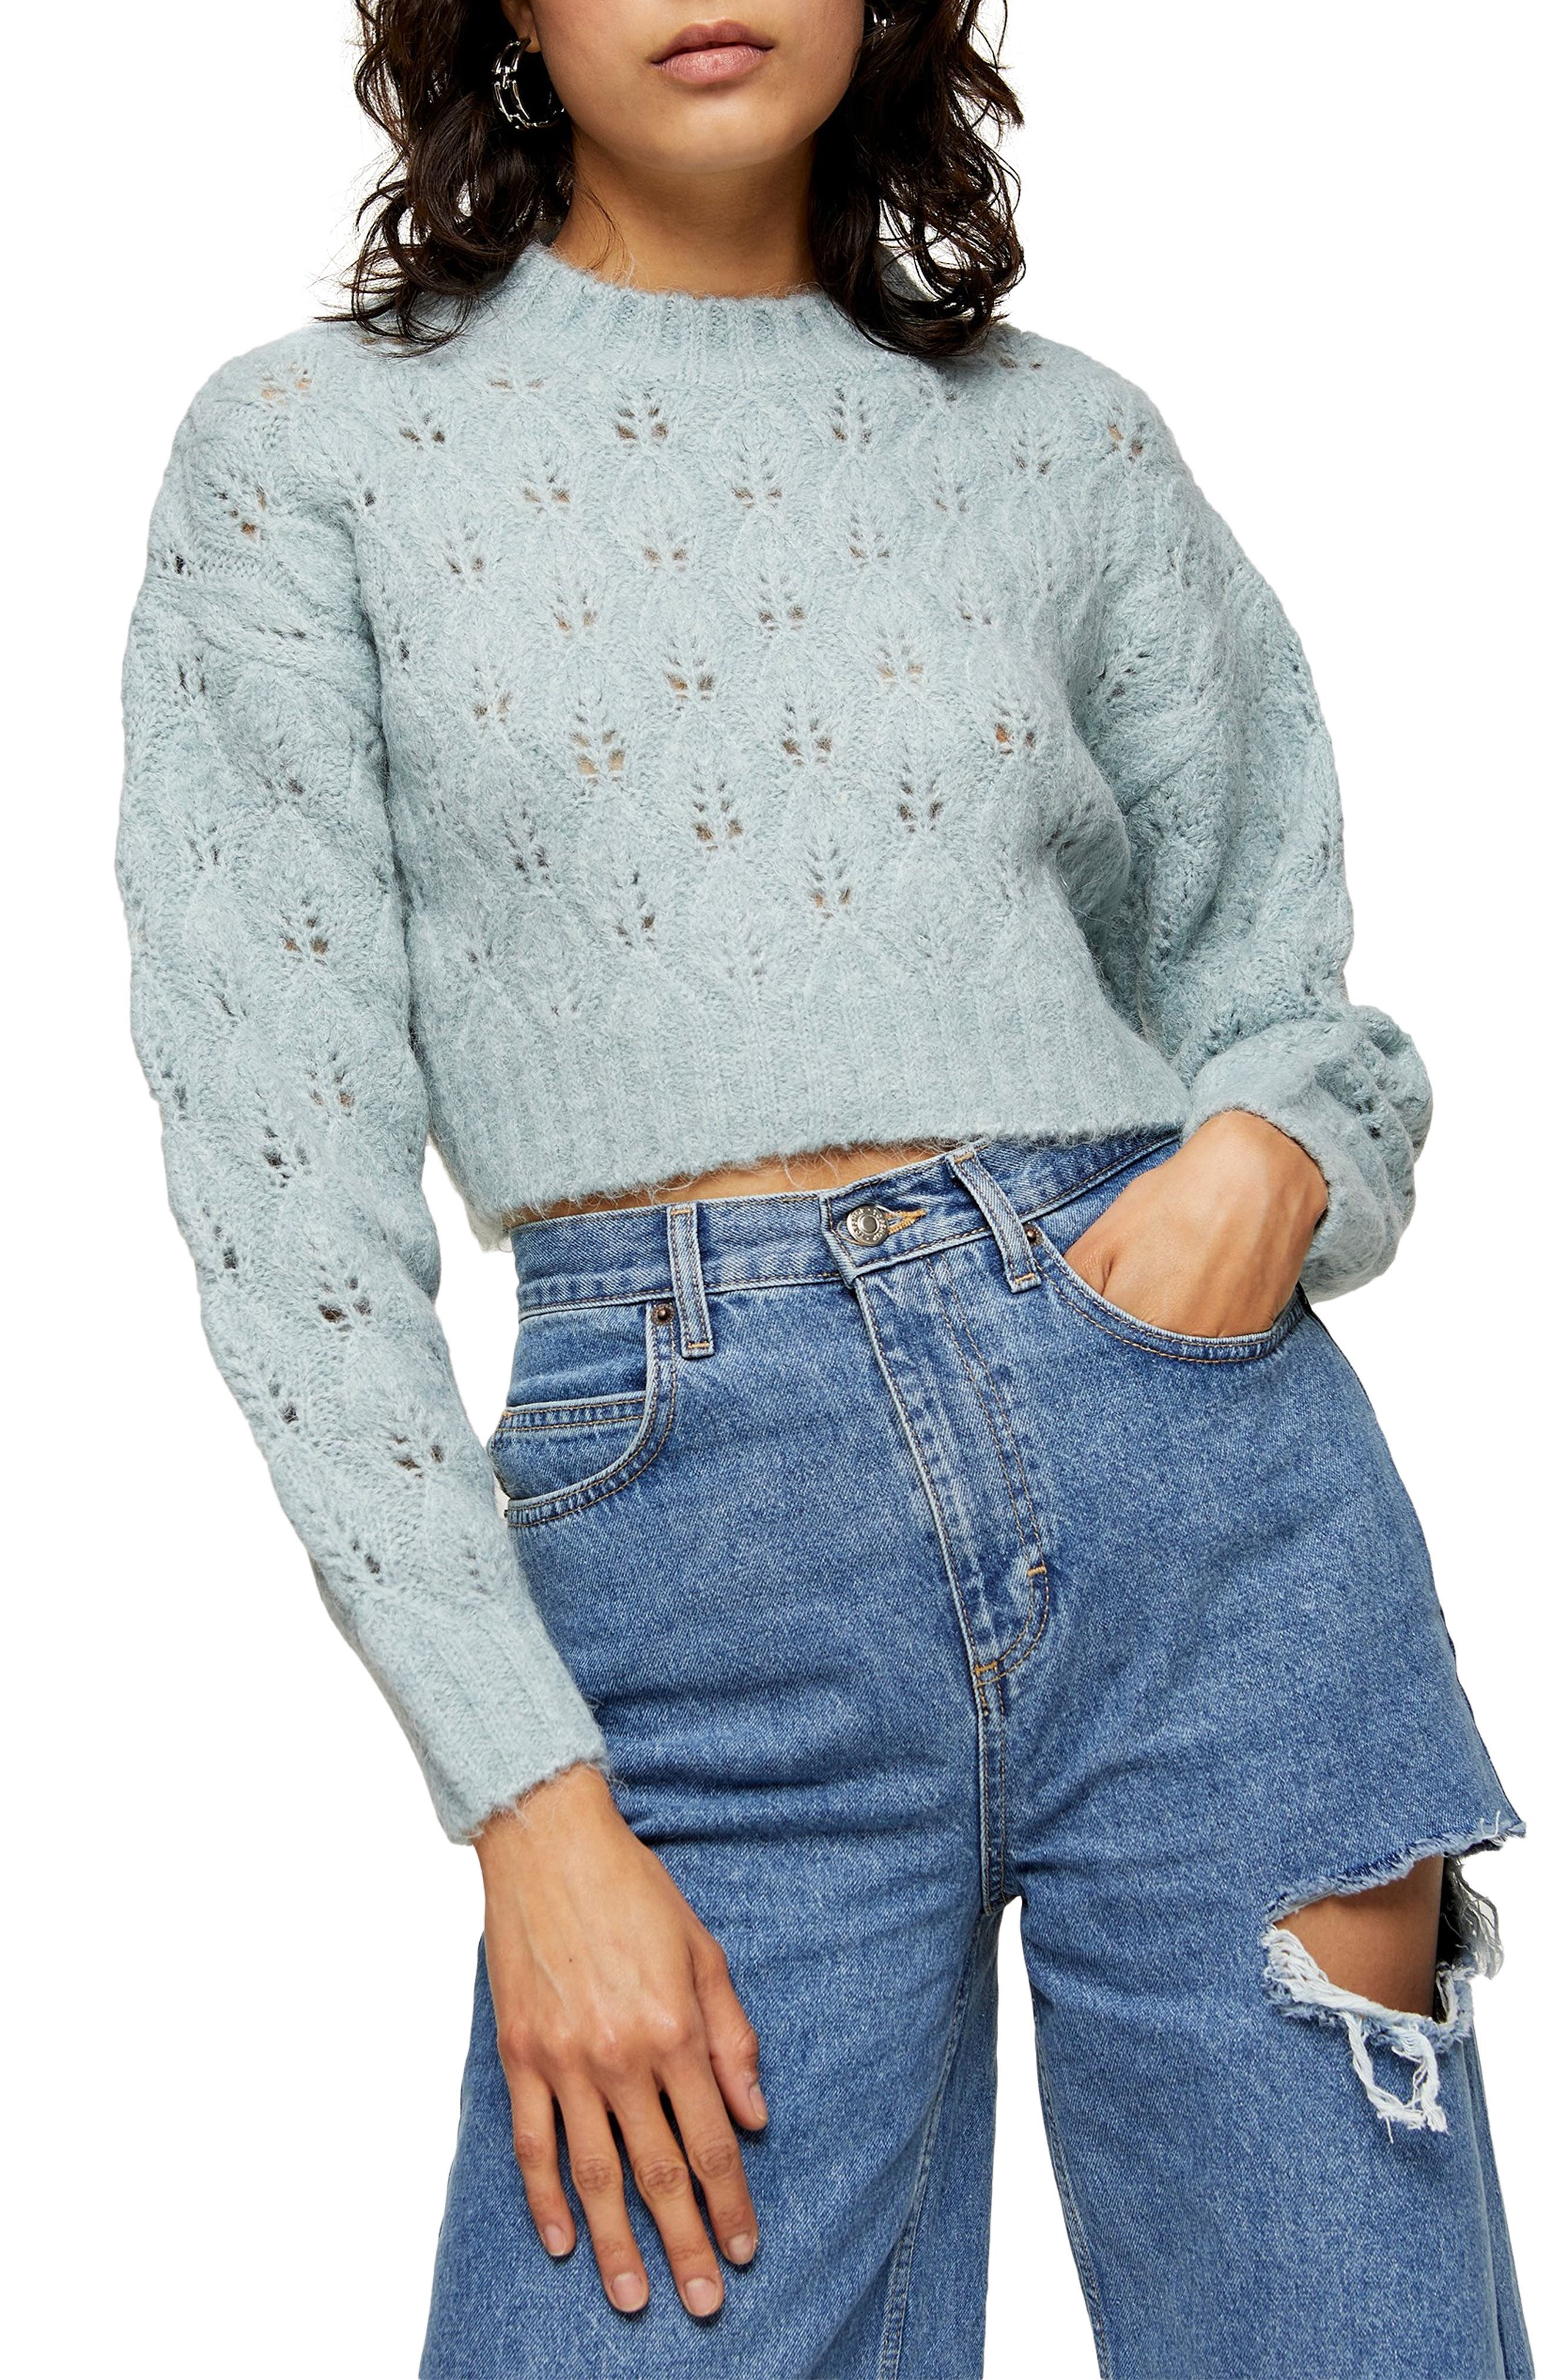 80s Sweatshirts and Sweaters Womens Topshop Crop Pointelle Sweater $43.50 AT vintagedancer.com